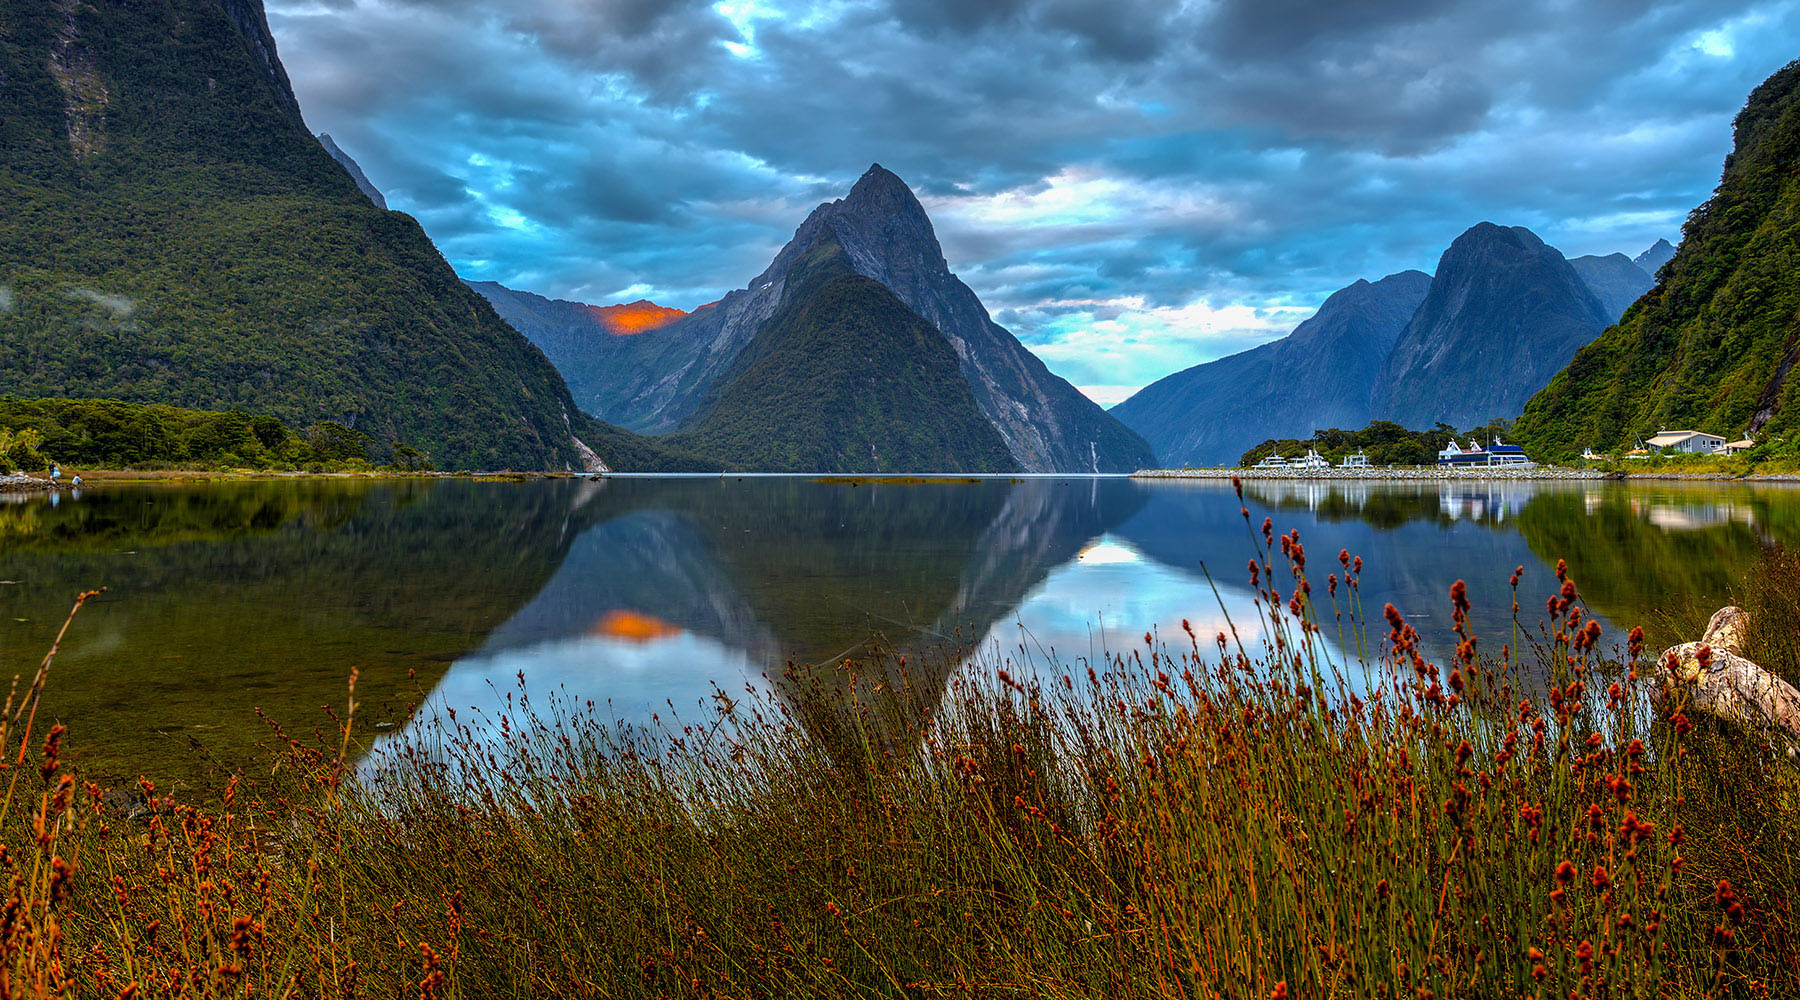 15-Night New Zealand Intensive Voyage